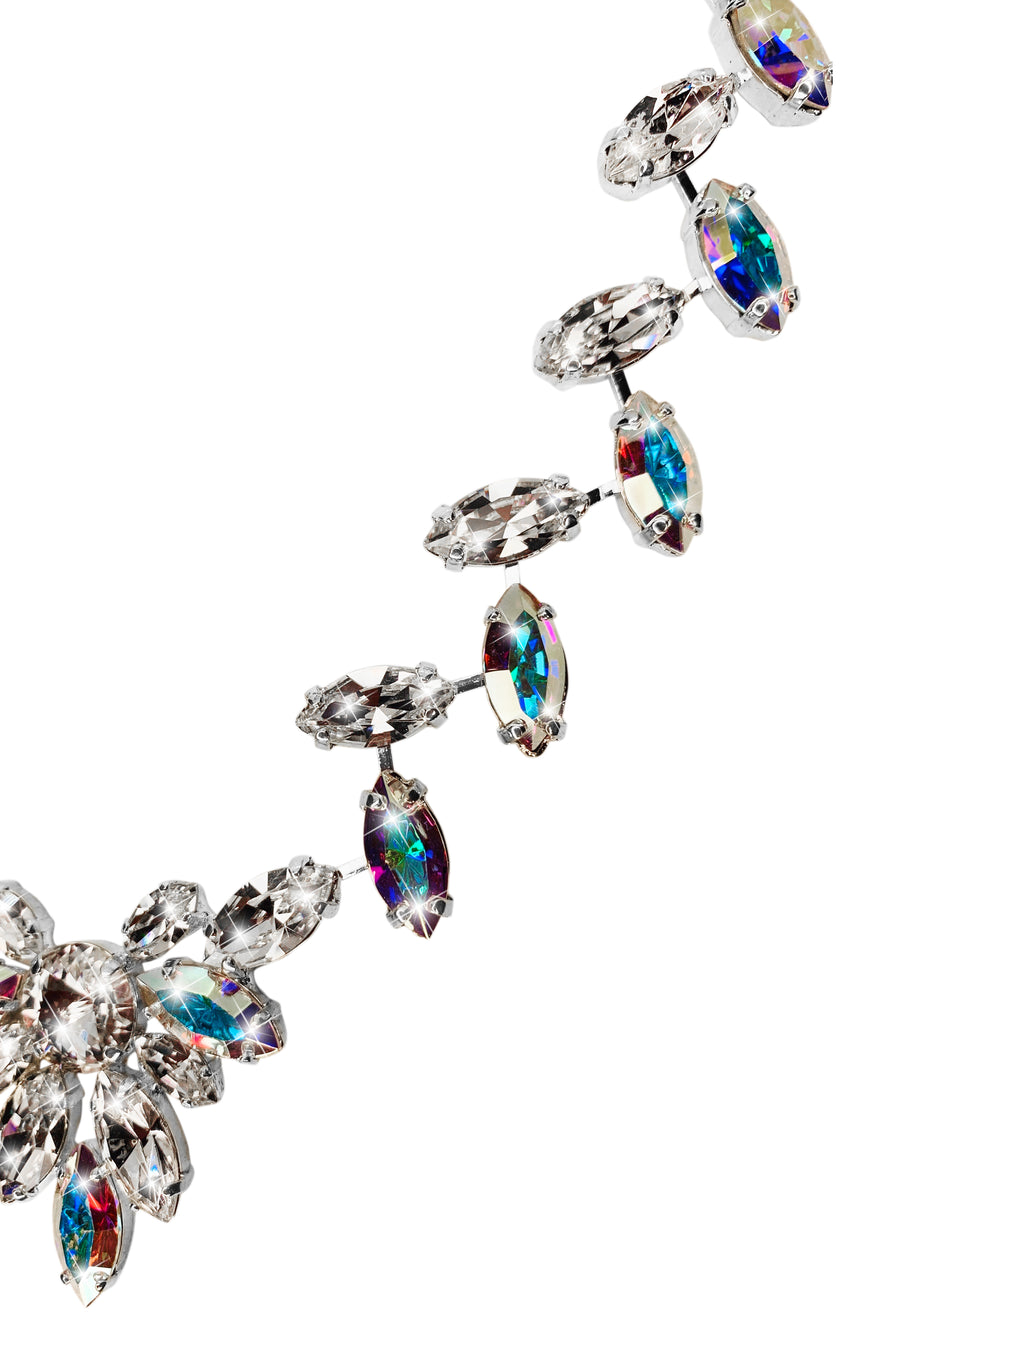 BIRD OF PARADISE NECKLACE SILVER CRYSTAL/CRYSTAL AB